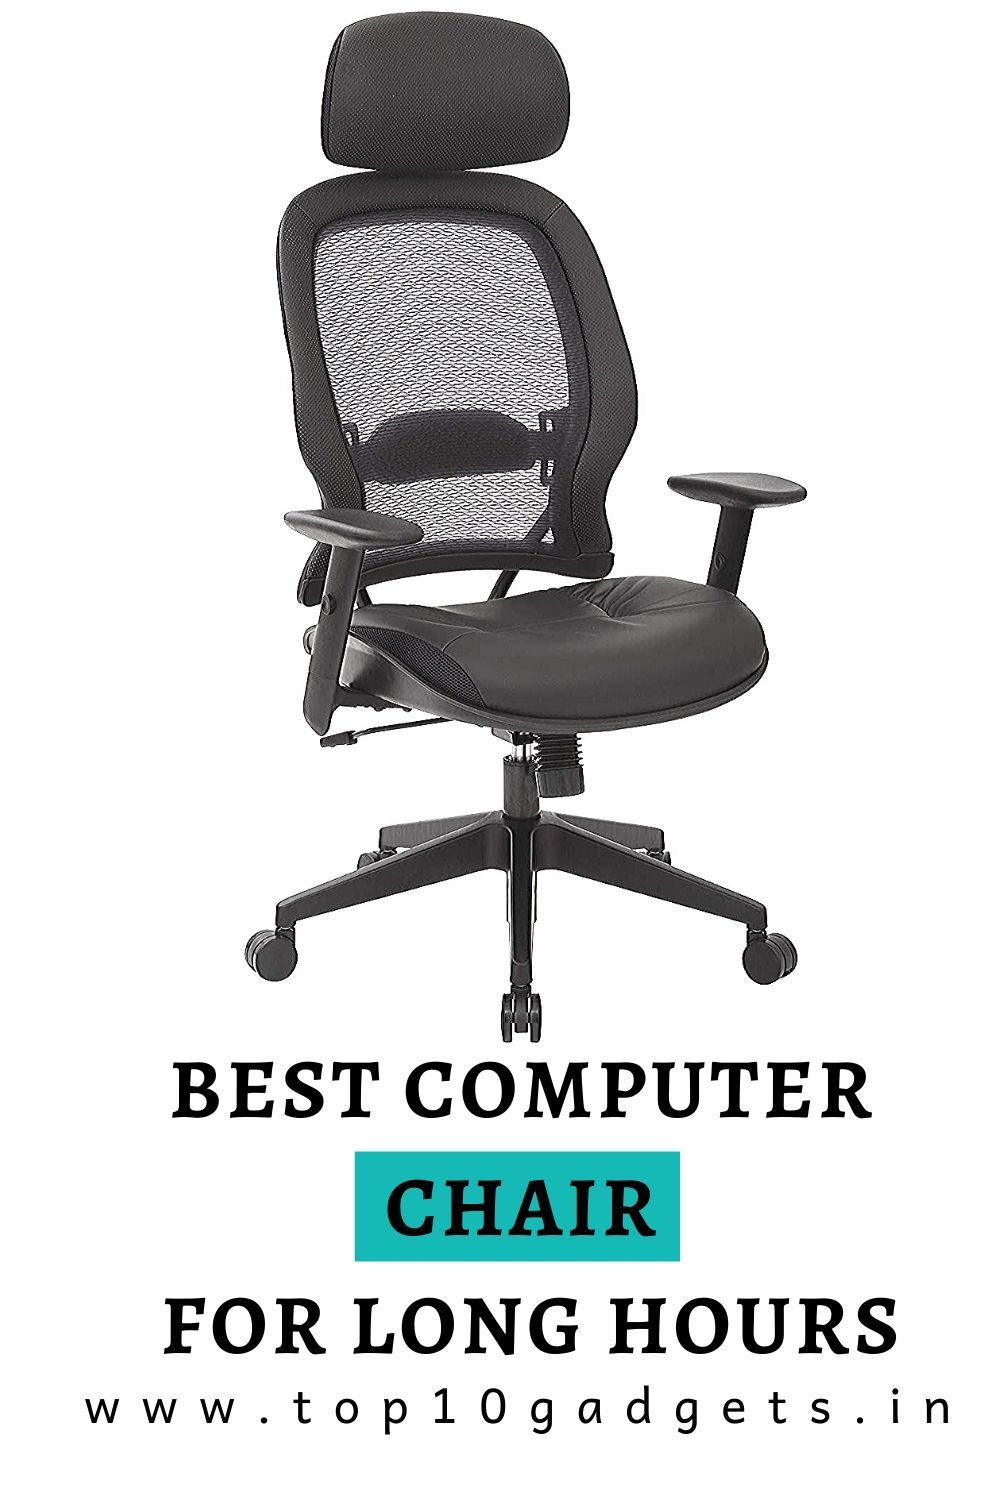 Best Computer Chair For Long Hours Buying Guide & Review